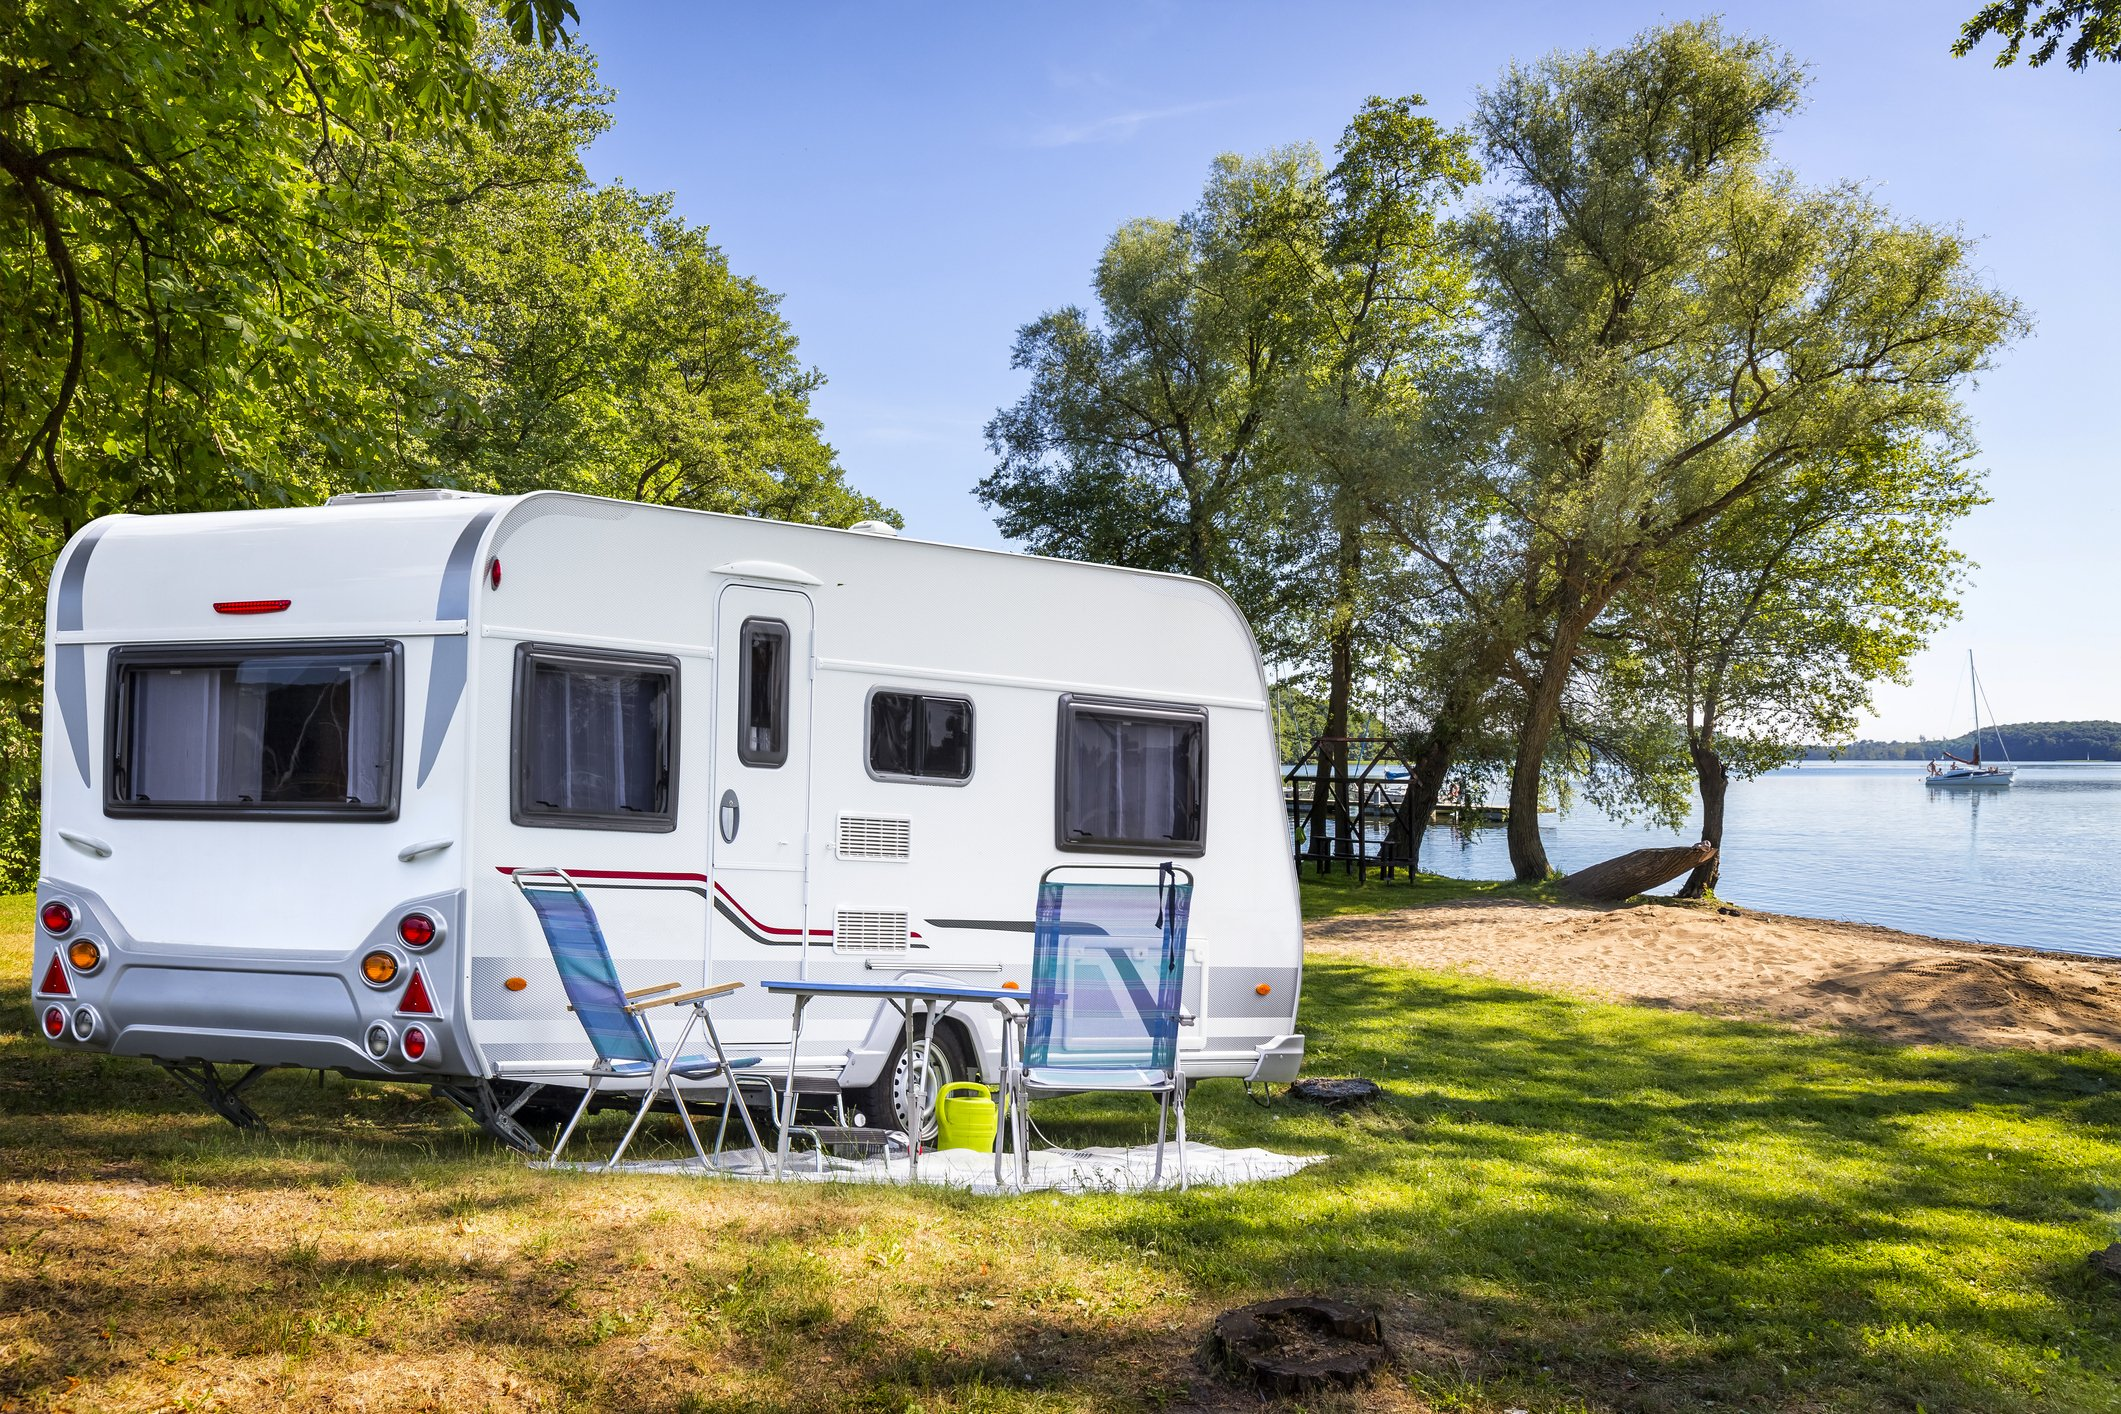 Slide 9 of 10: According to VacationRenter, searches for RVs were up more than 350 percent at the beginning of the summer compared to the quarantine spring, and over twice the previous all-time high. So there's a better than average chance that if you're going on a road trip, you may be traversing the country with the comforts of home at your fingertips. To make it feel even more comfortable, you can bring some camping and entertainment essentials, above, then add these additional RV highlights.  Bedding Folding table and chairs Bikes and locks Outdoor adventure blanket Easy cooking ingredients Snack containers Seat cushions Travel pillow Sun shade  Wherever your park, make sure you follow these 11 unspoken rules of RV etiquette.